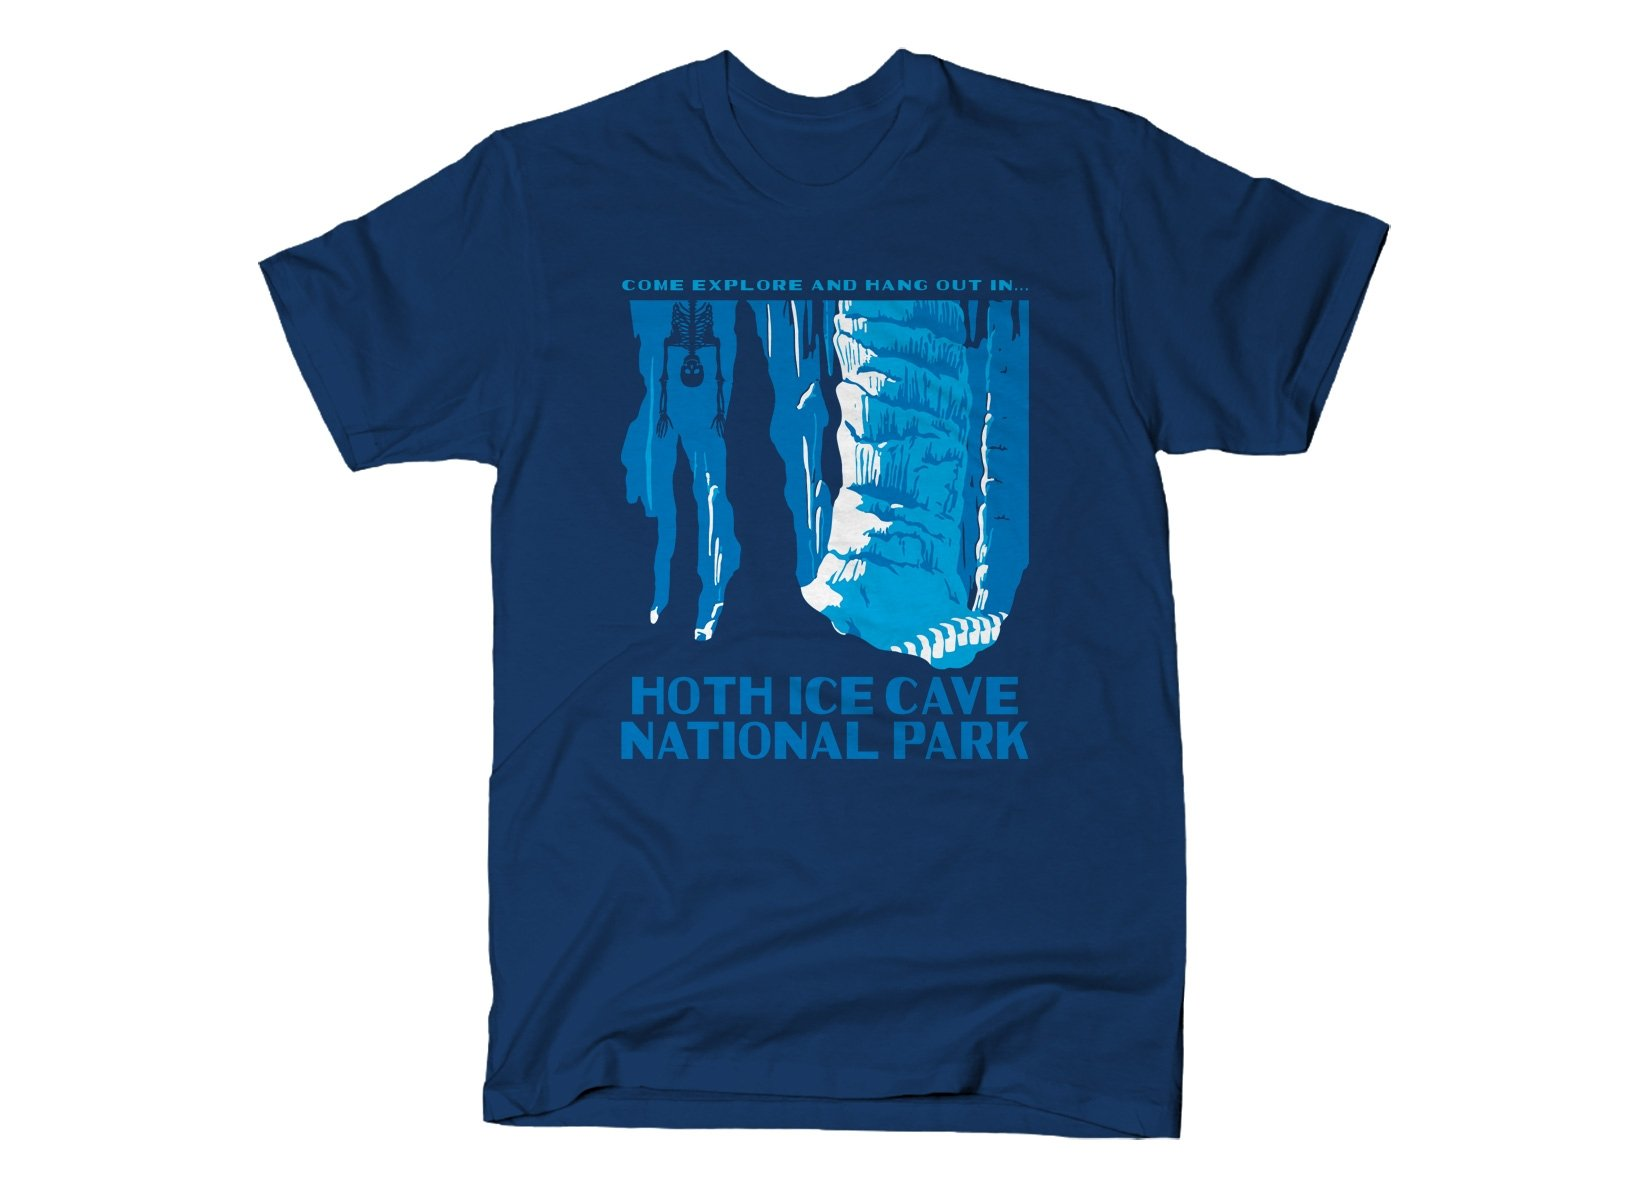 Hoth Ice Cave National Park on Mens T-Shirt